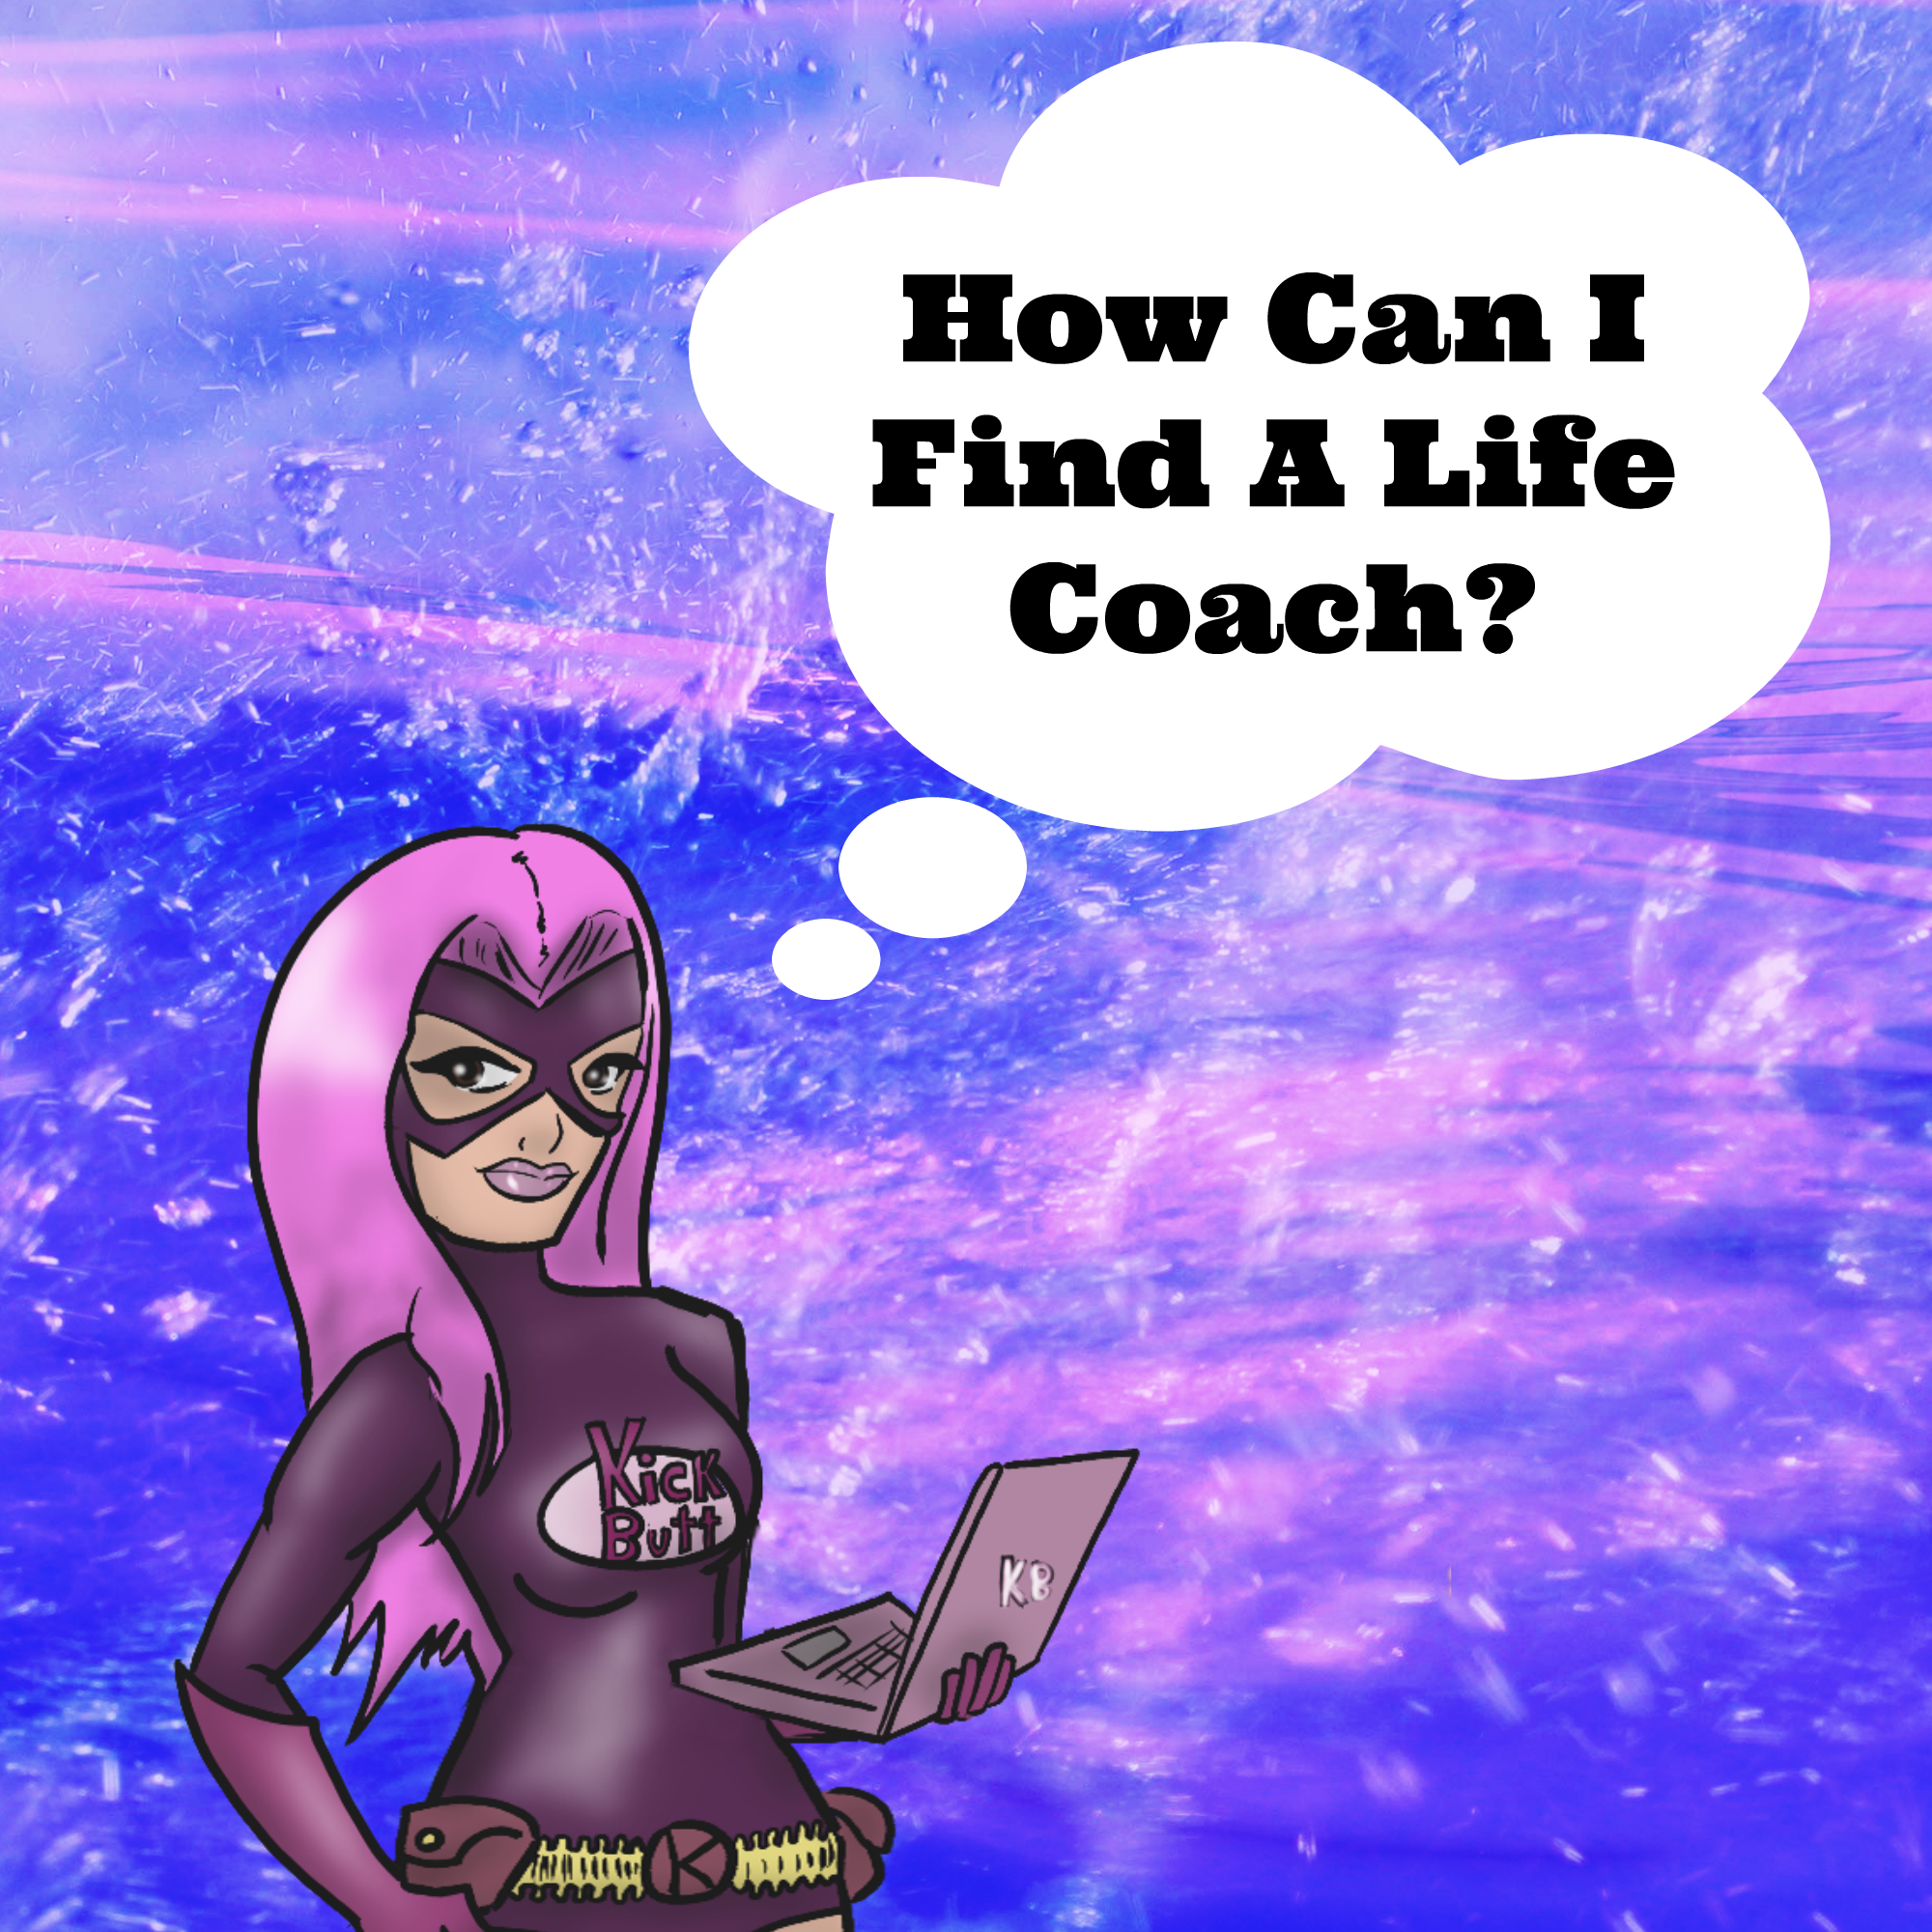 How can I find A Life Coach